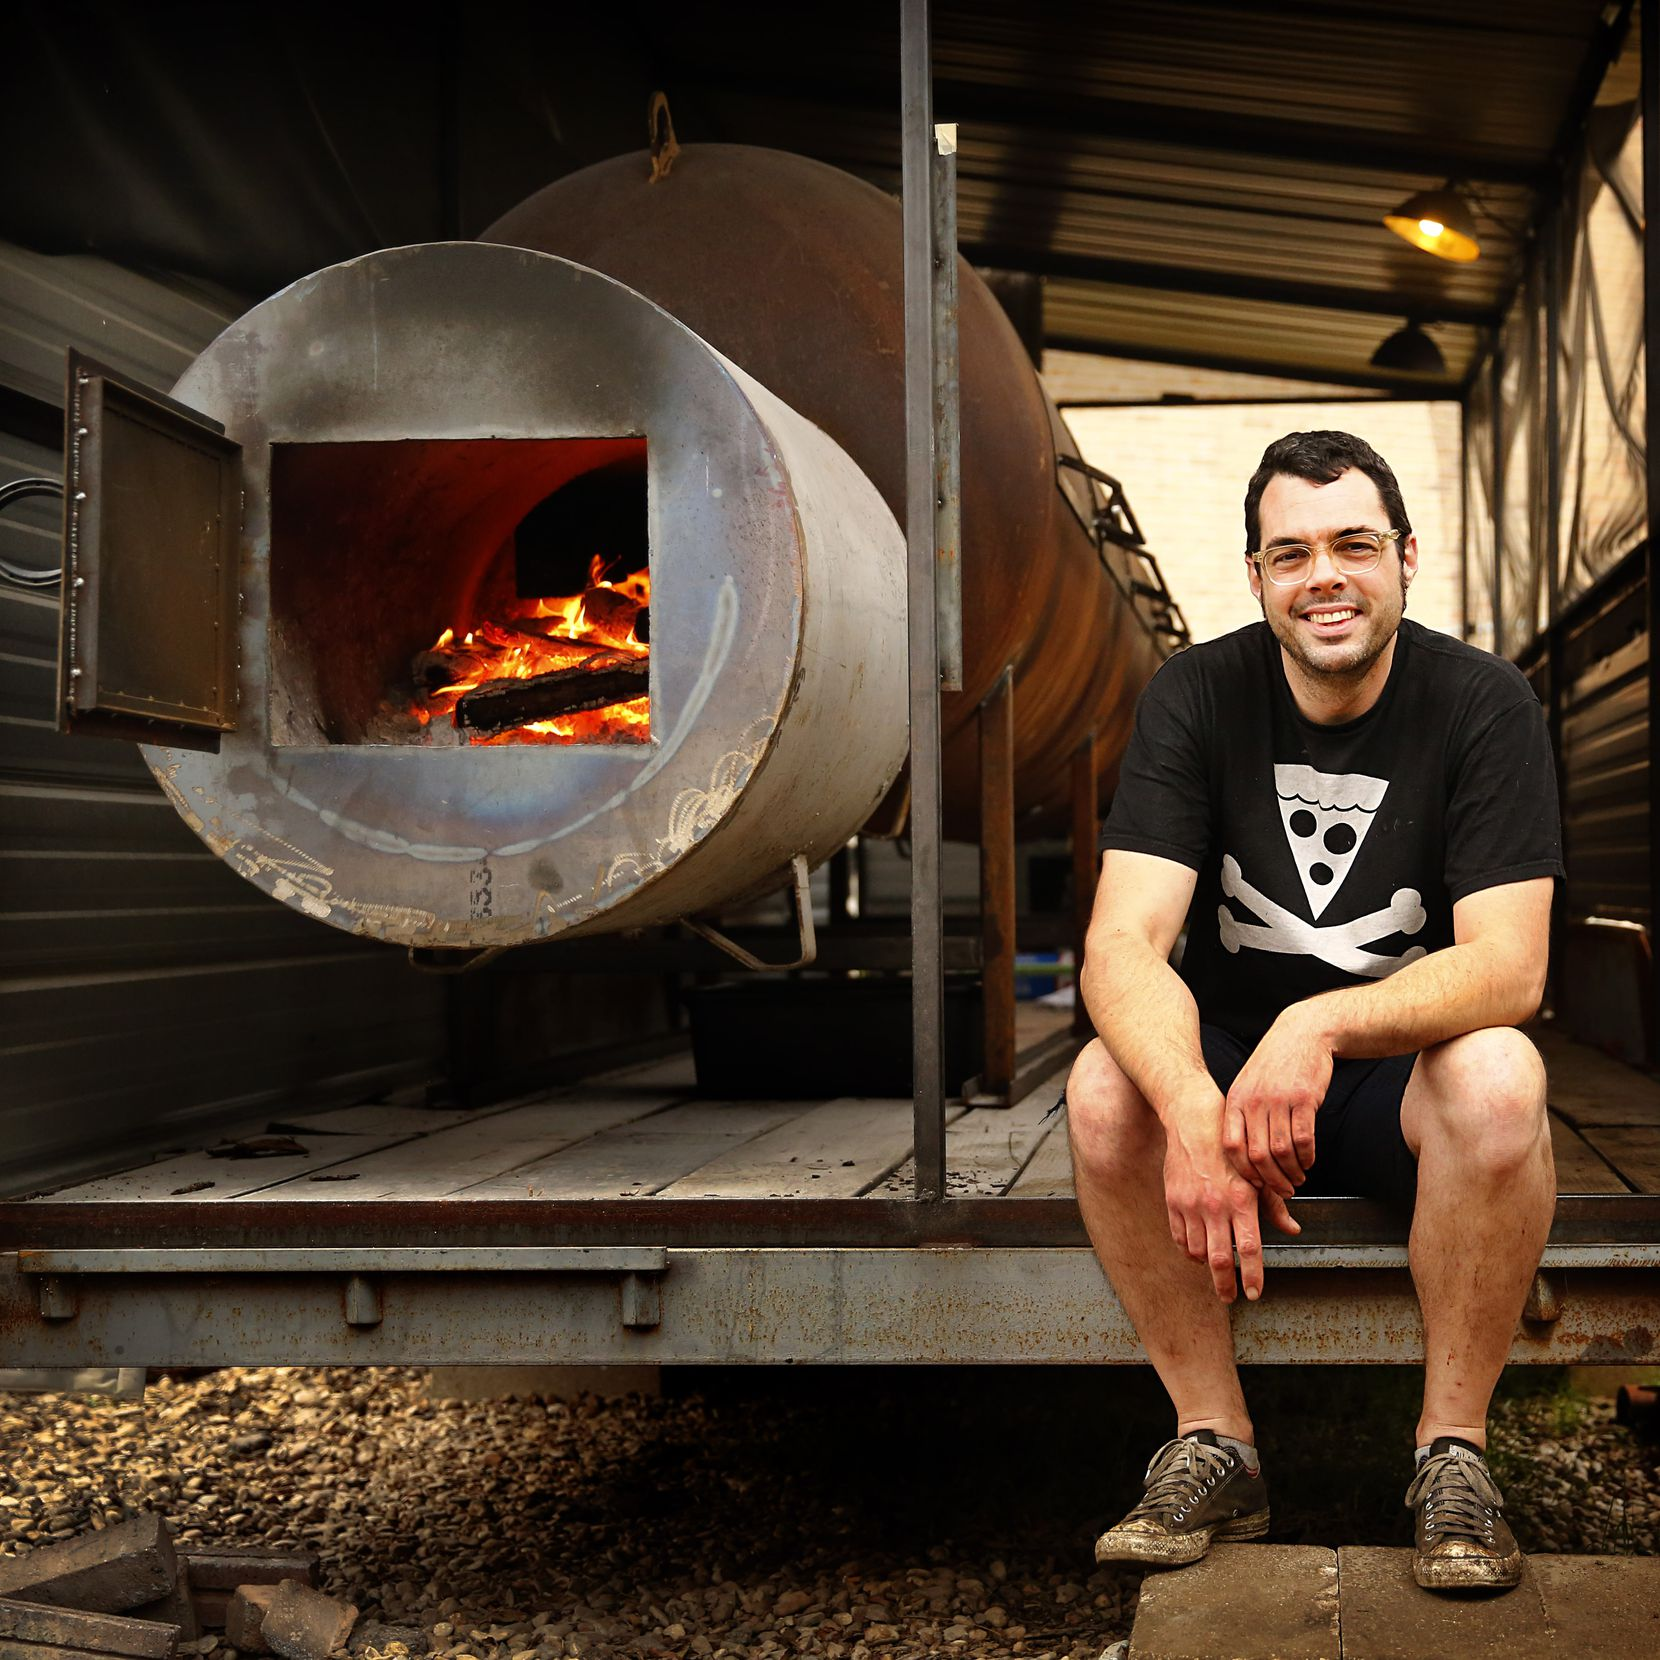 Famed pitmaster Aaron Franklin poses with his smoker behind Franklin Barbecue in 2013 on Day 2 of the Texas BBQ Posse's Best of Texas BBQ Tour.